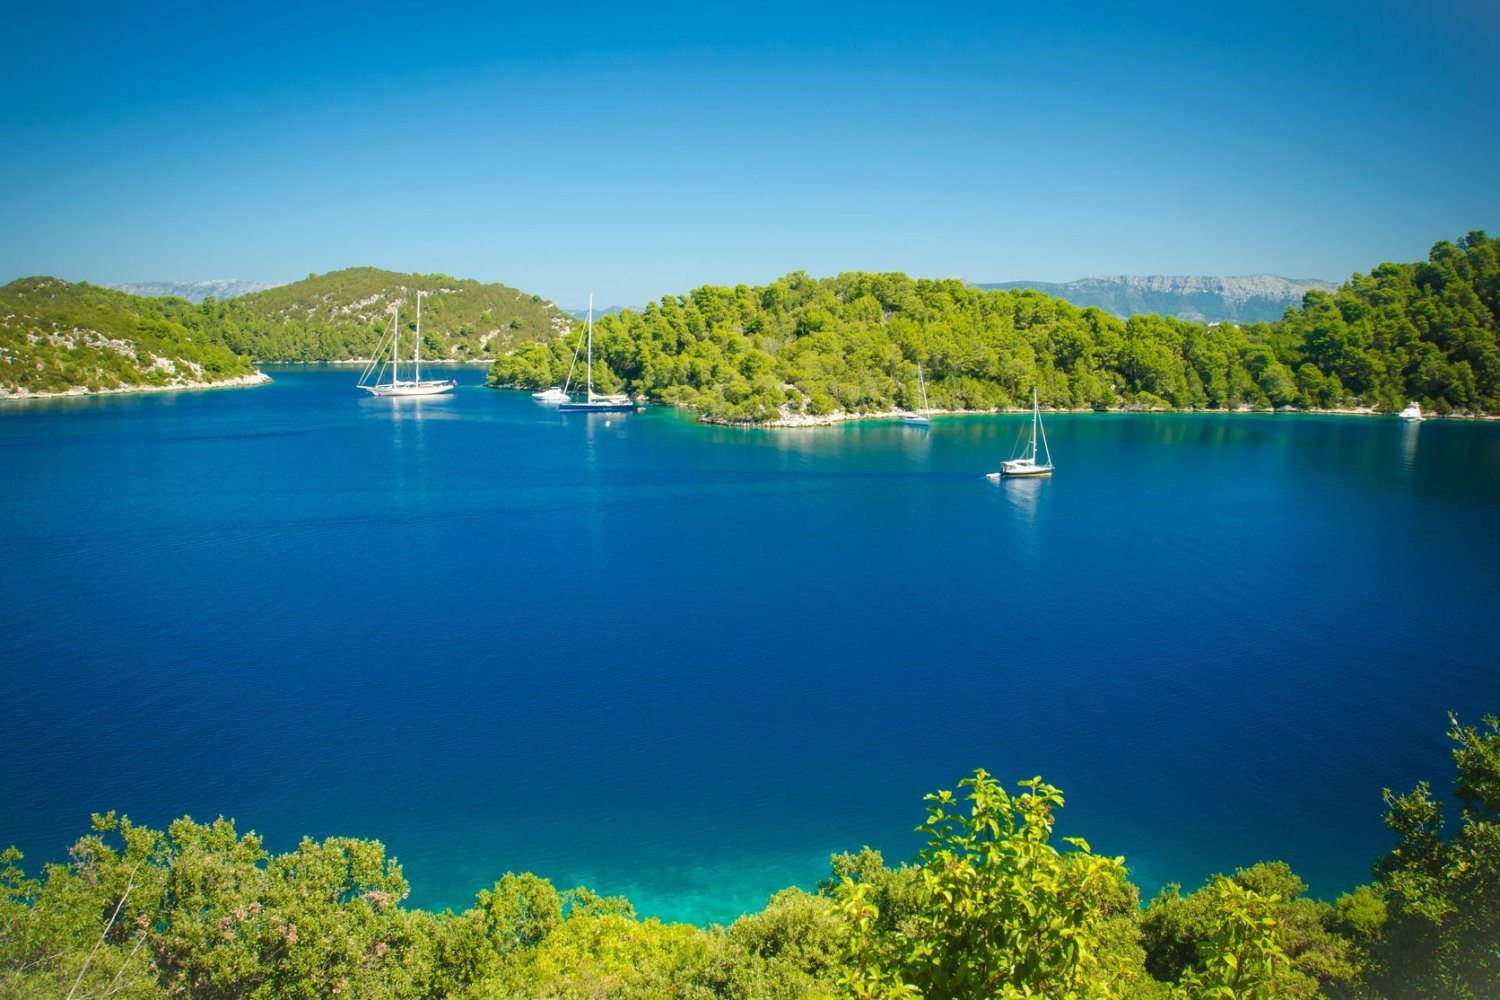 Croatian Islands, Mljet